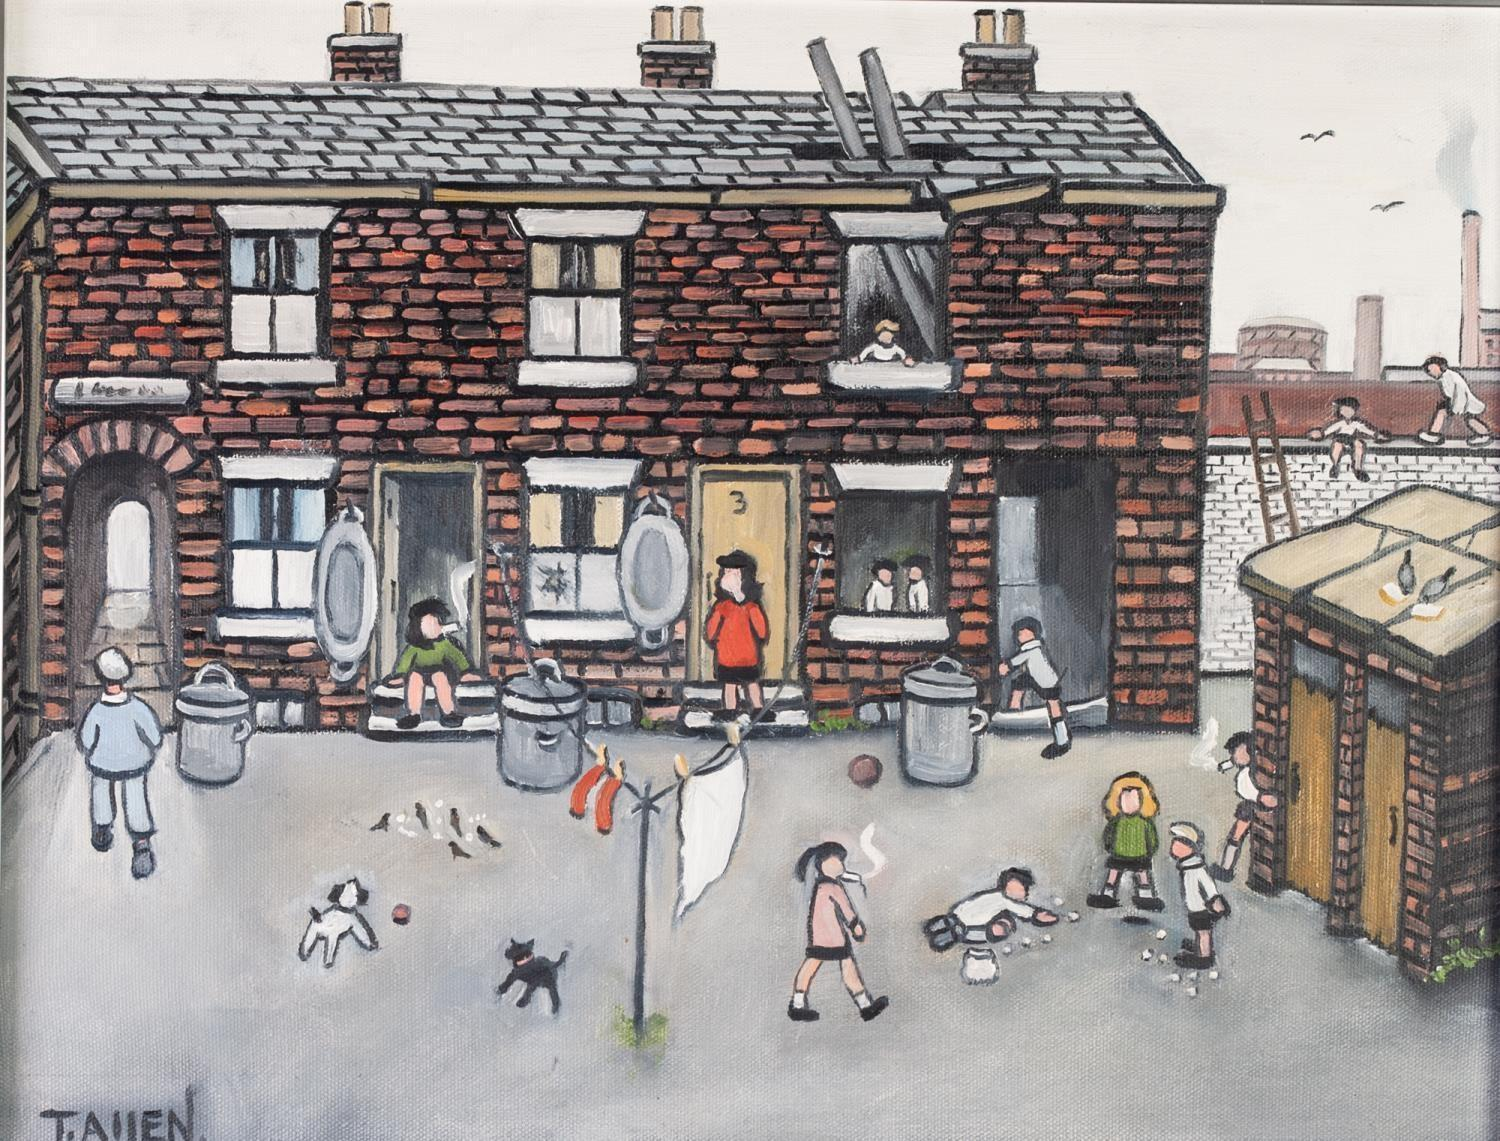 "Lot 1 - TERRY ALLEN (Stockport) OIL PAINTING ON CANVAS 'Foys Entry, Stockport' Signed lower left 13 1/4"" x"